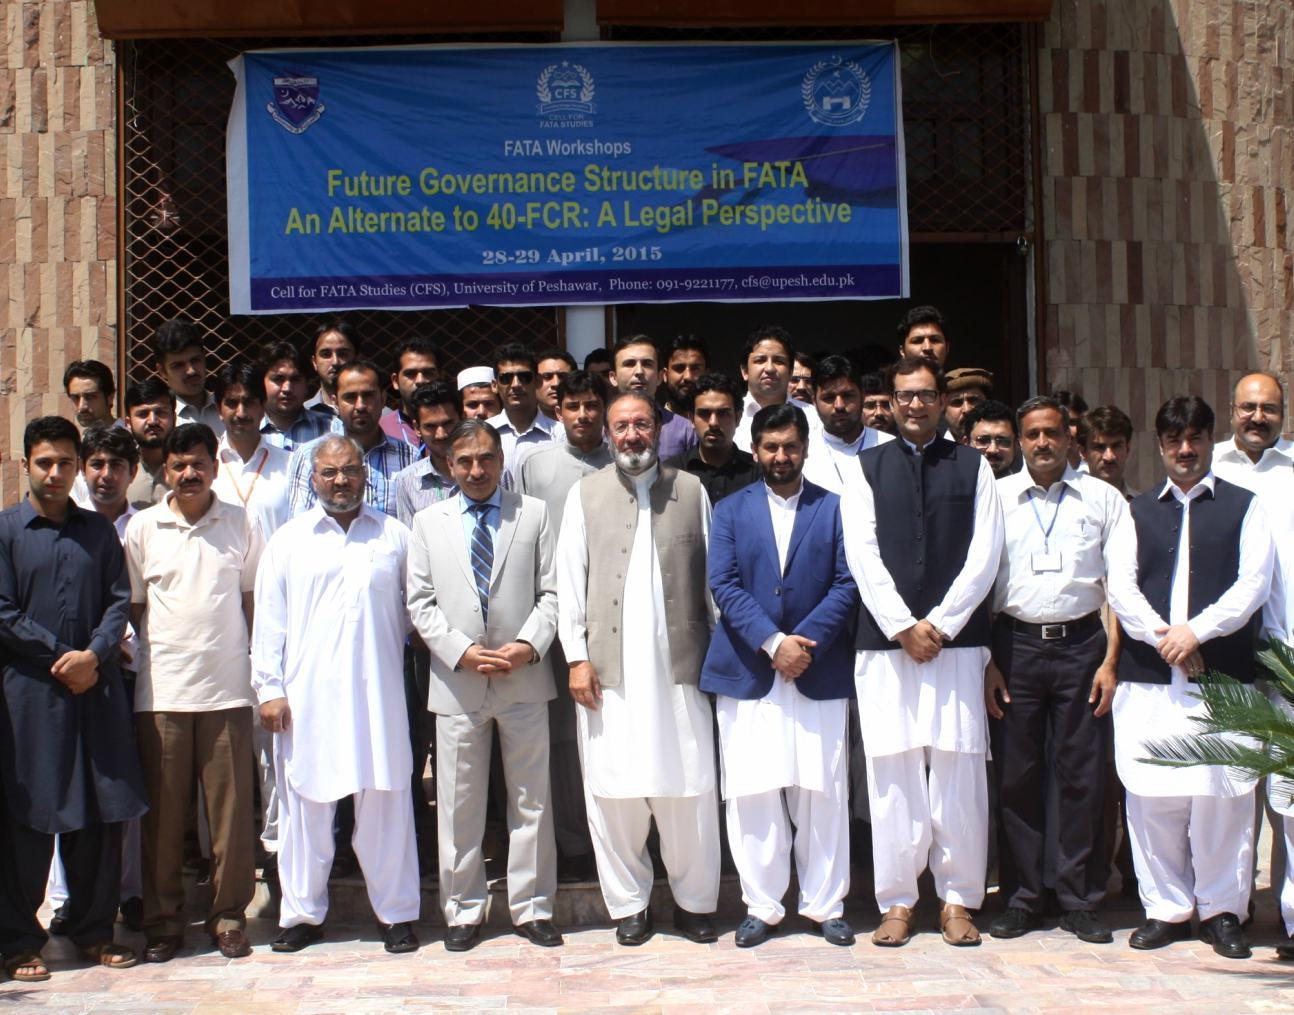 Vice Chancellor UoP Prof. Dr. Muhammad Rasul Jan in group photo with participants of workshop in FATA governance at the University of Peshawar